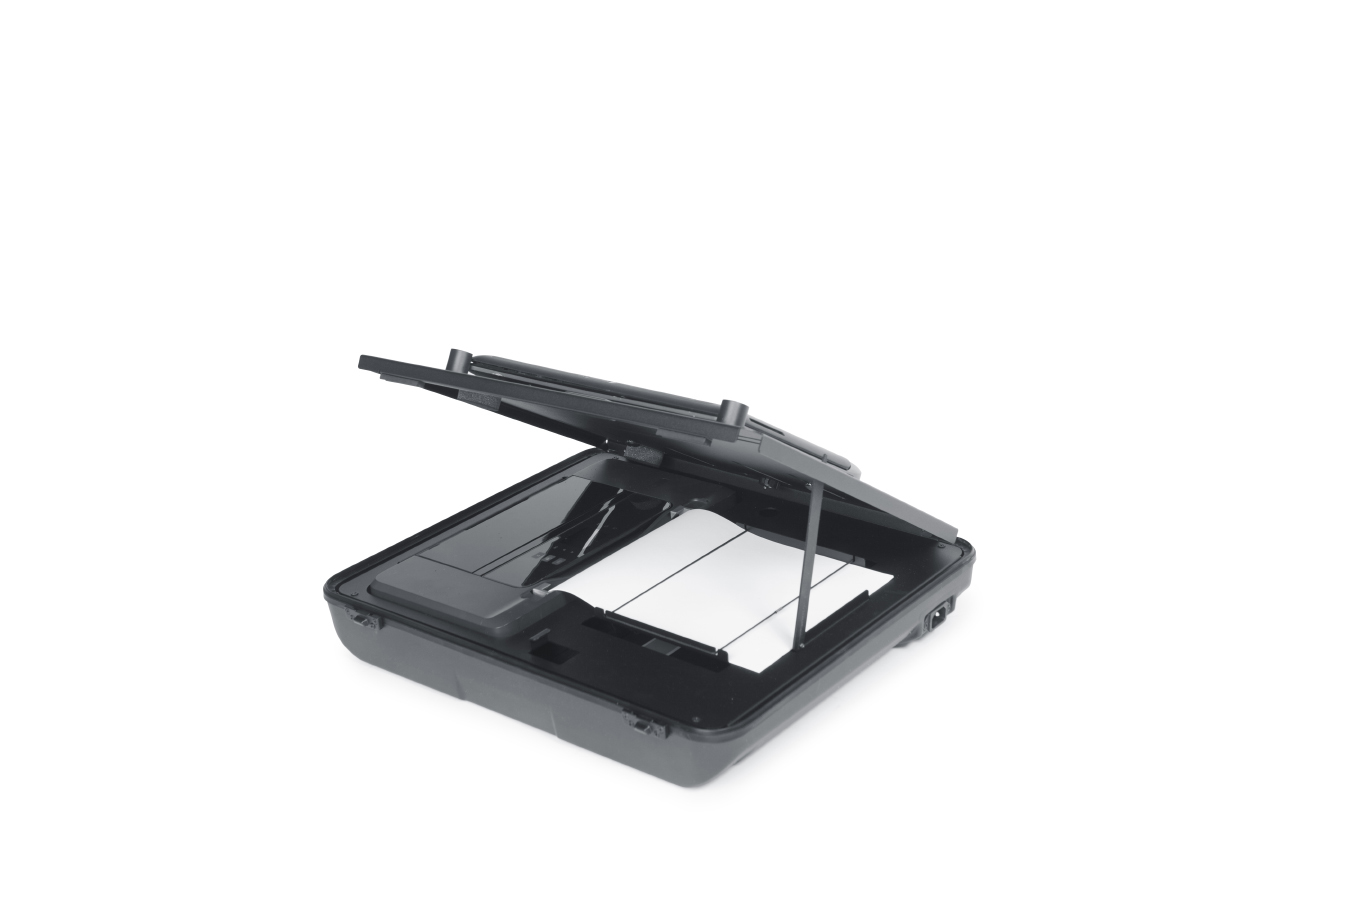 koffer laptop mobiele printer